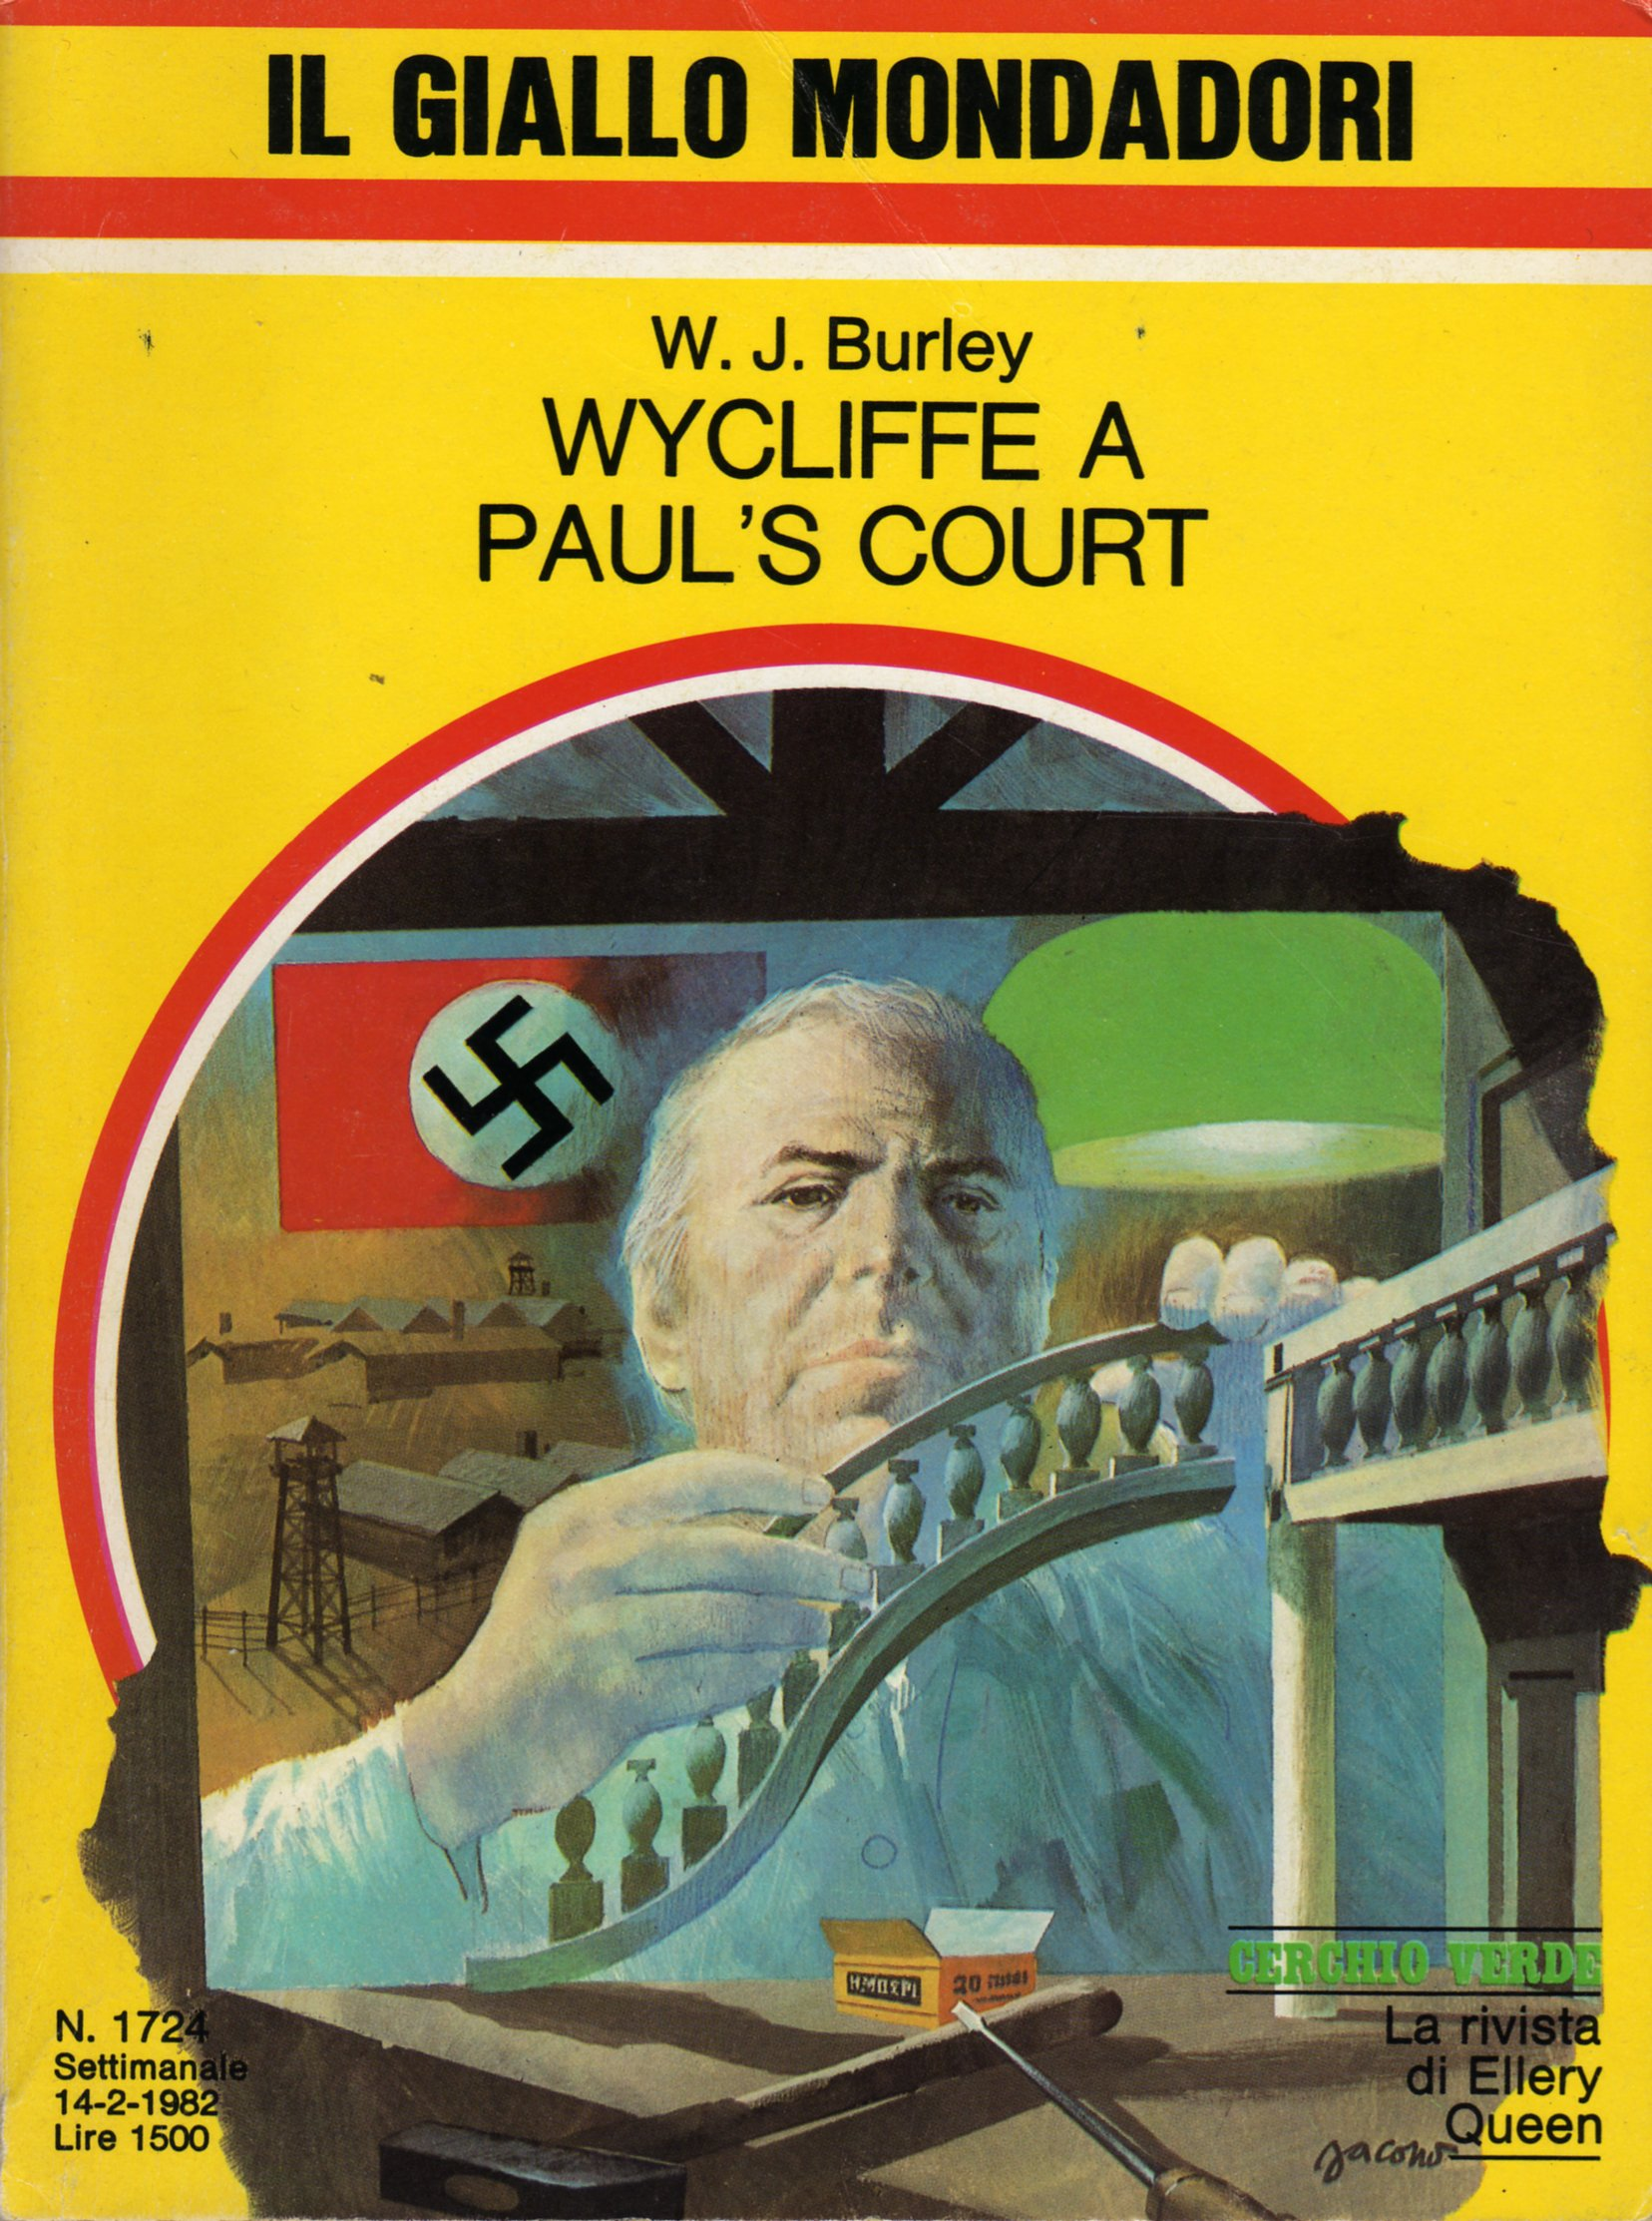 Wycliffe a Paul's Court)